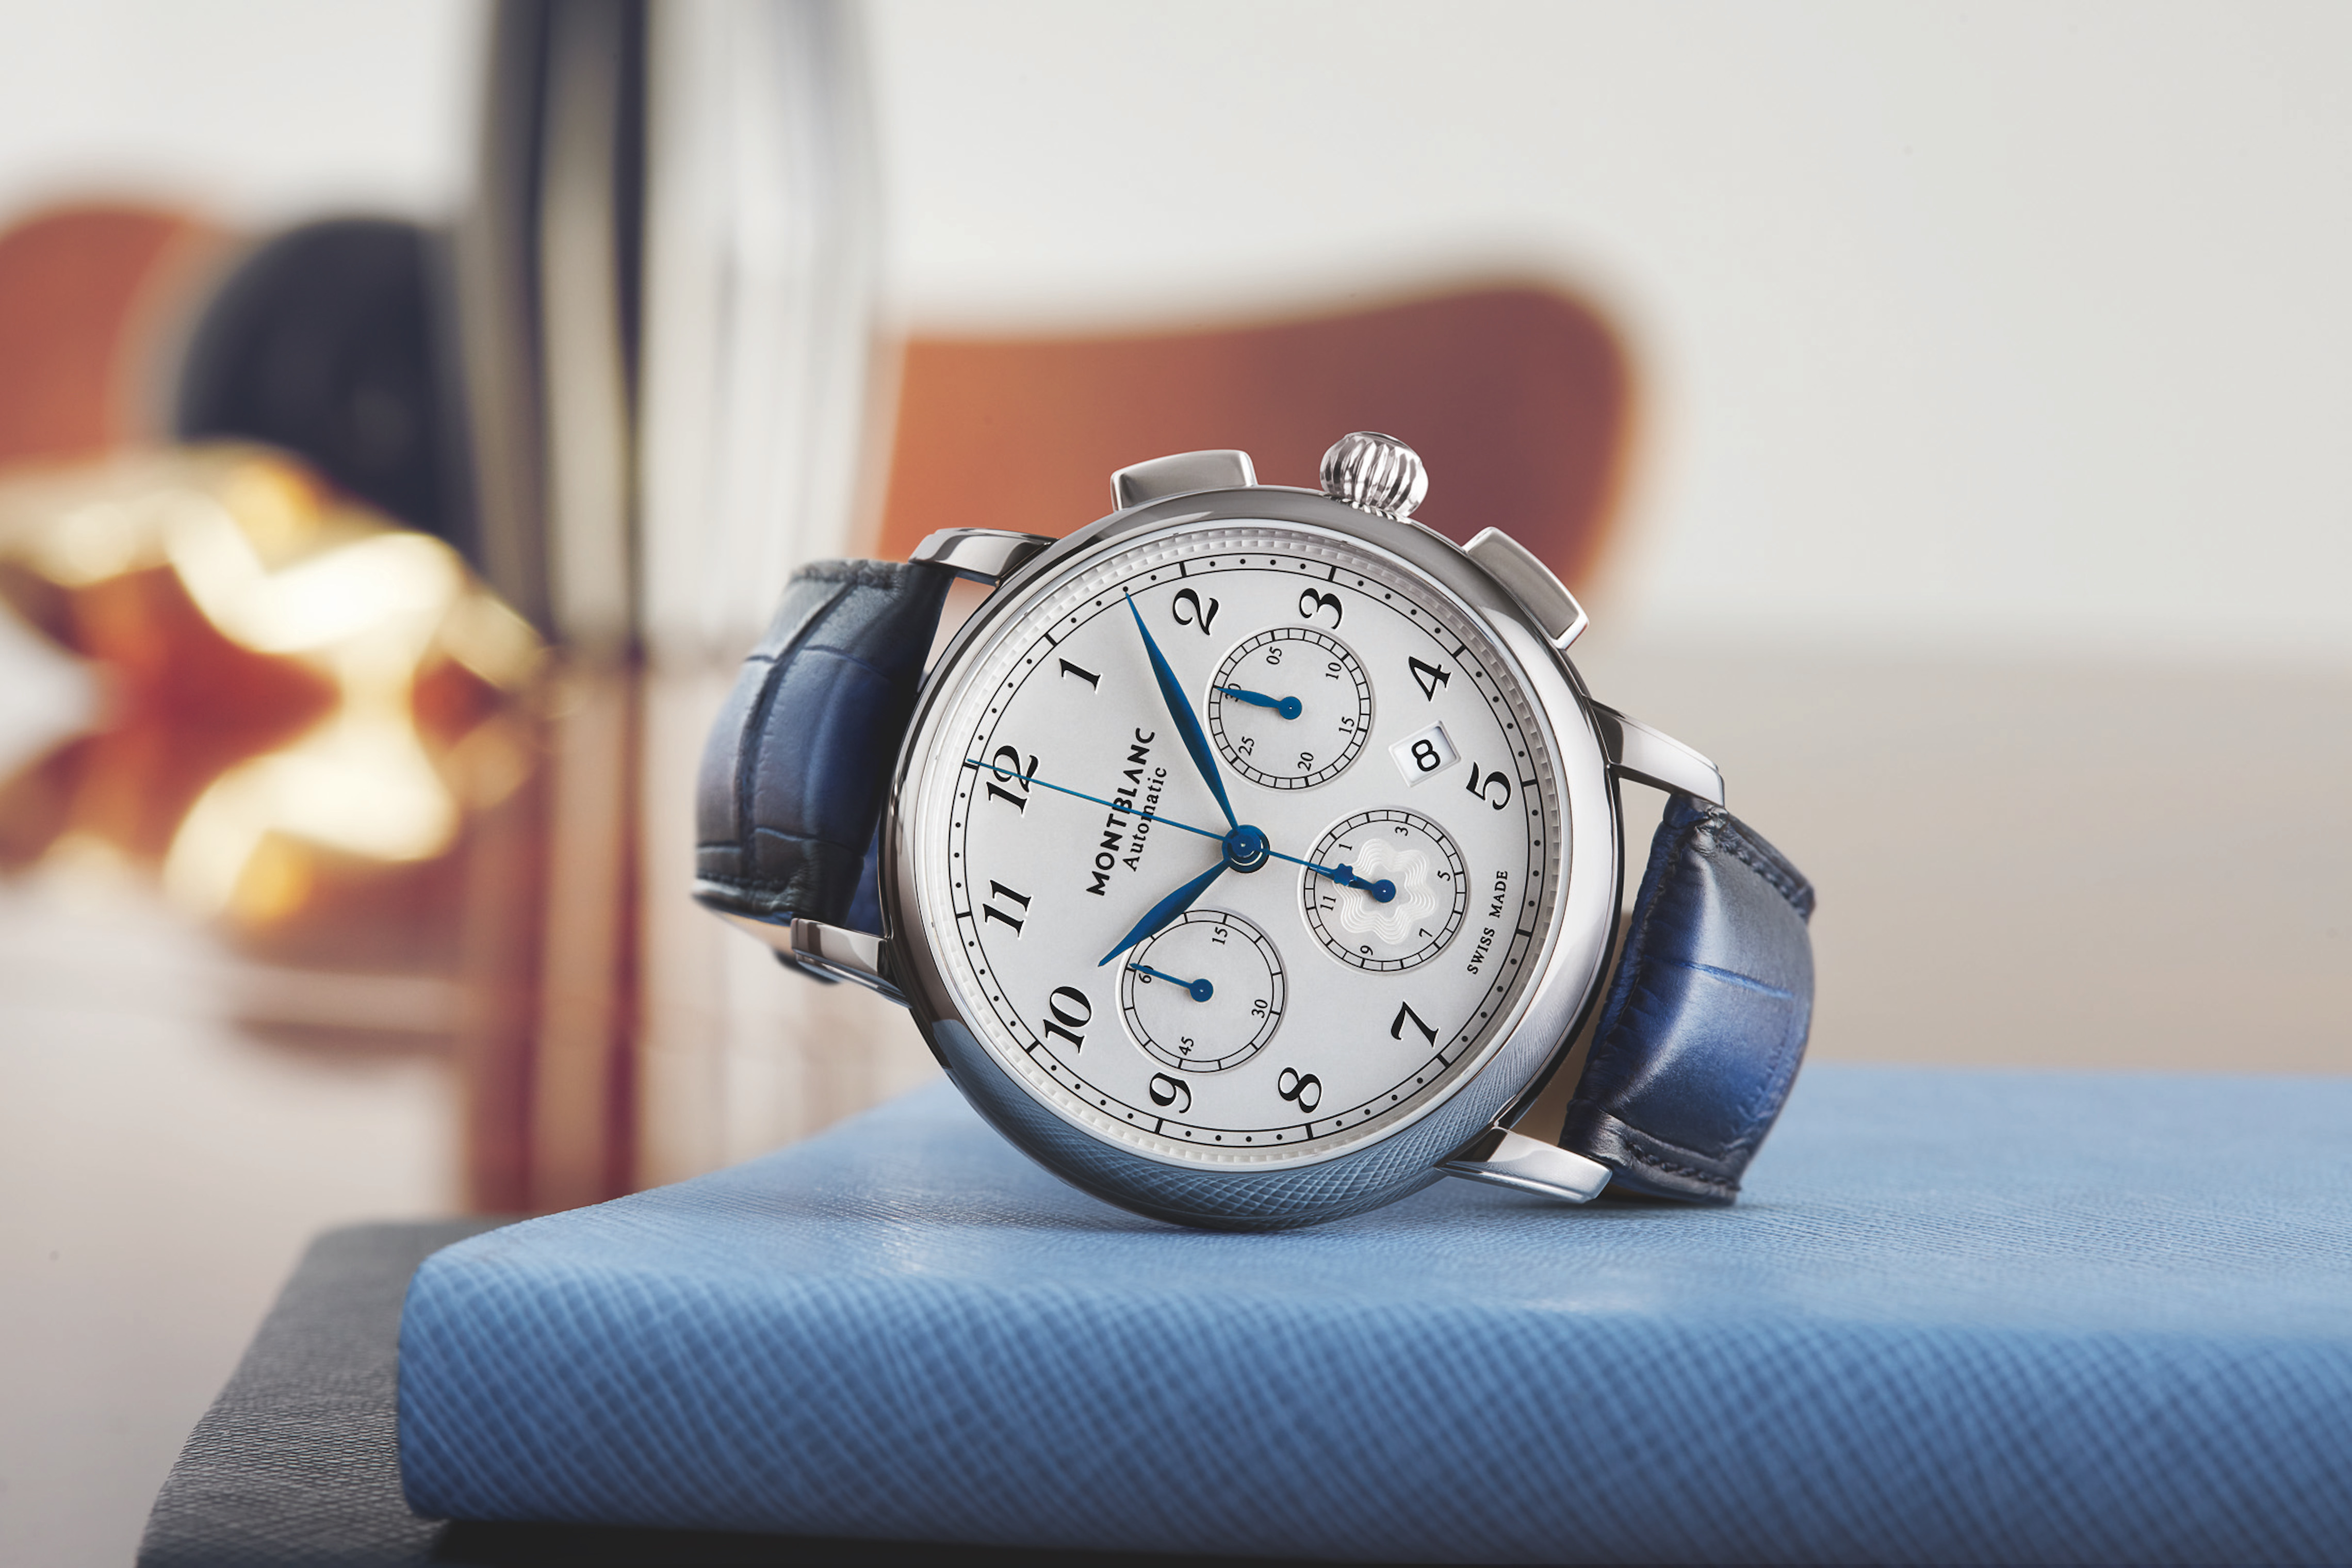 b48dcd959c0 The new Montblanc Star Legacy shines with these highlights